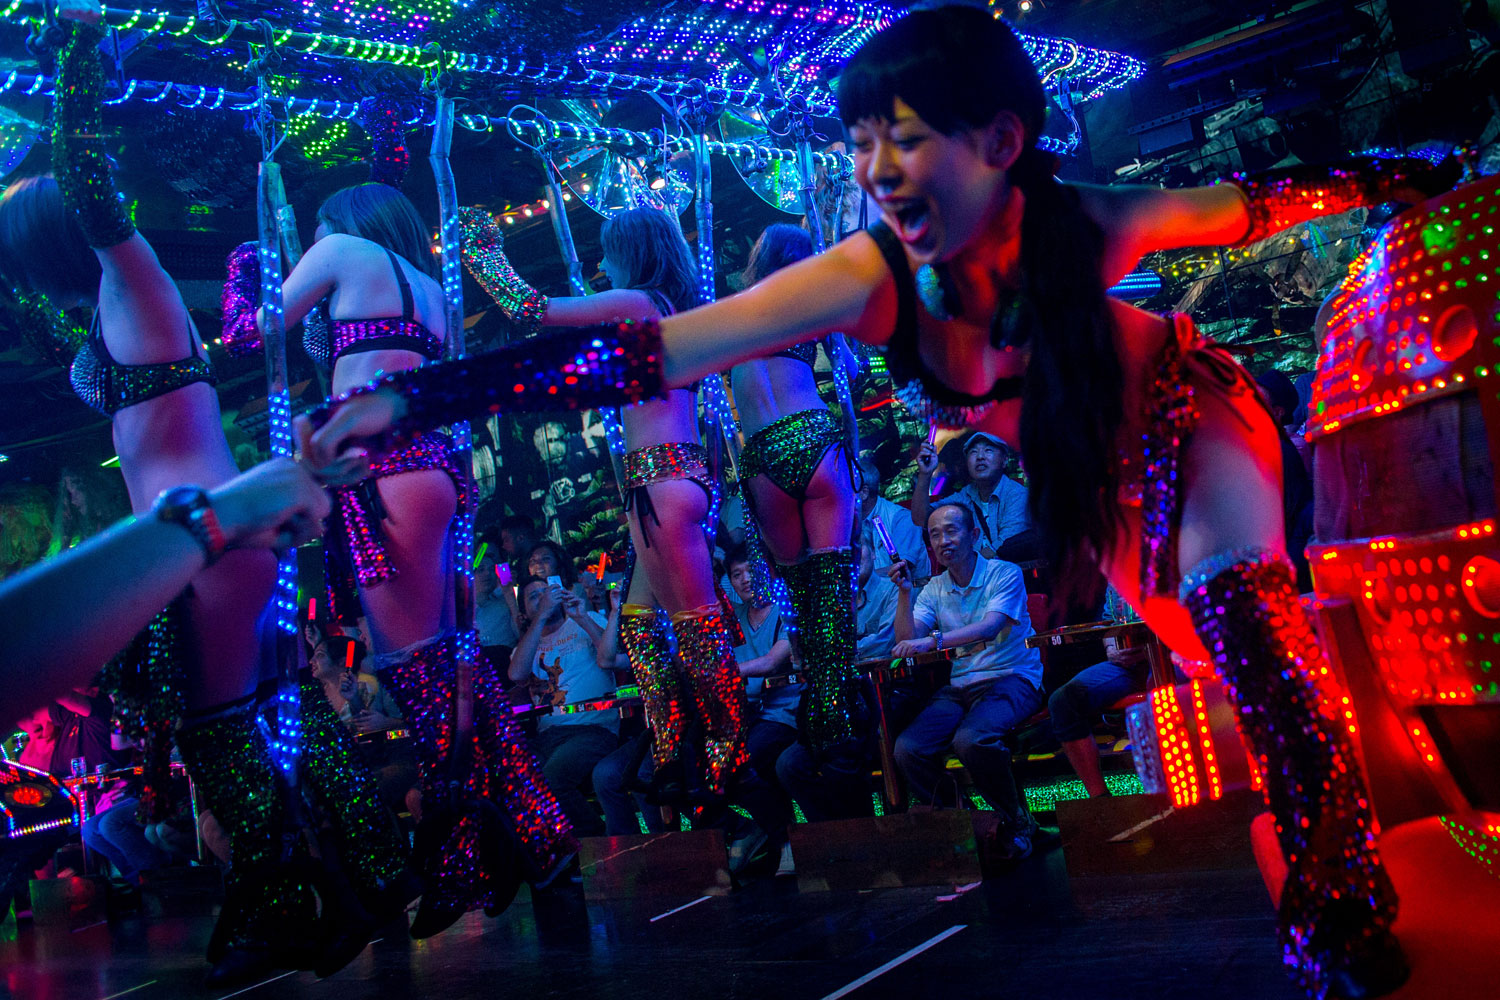 Dancers dressed as futuristic characters perform during a show at The Robot Restaurant on June 29, 2014 in Tokyo.